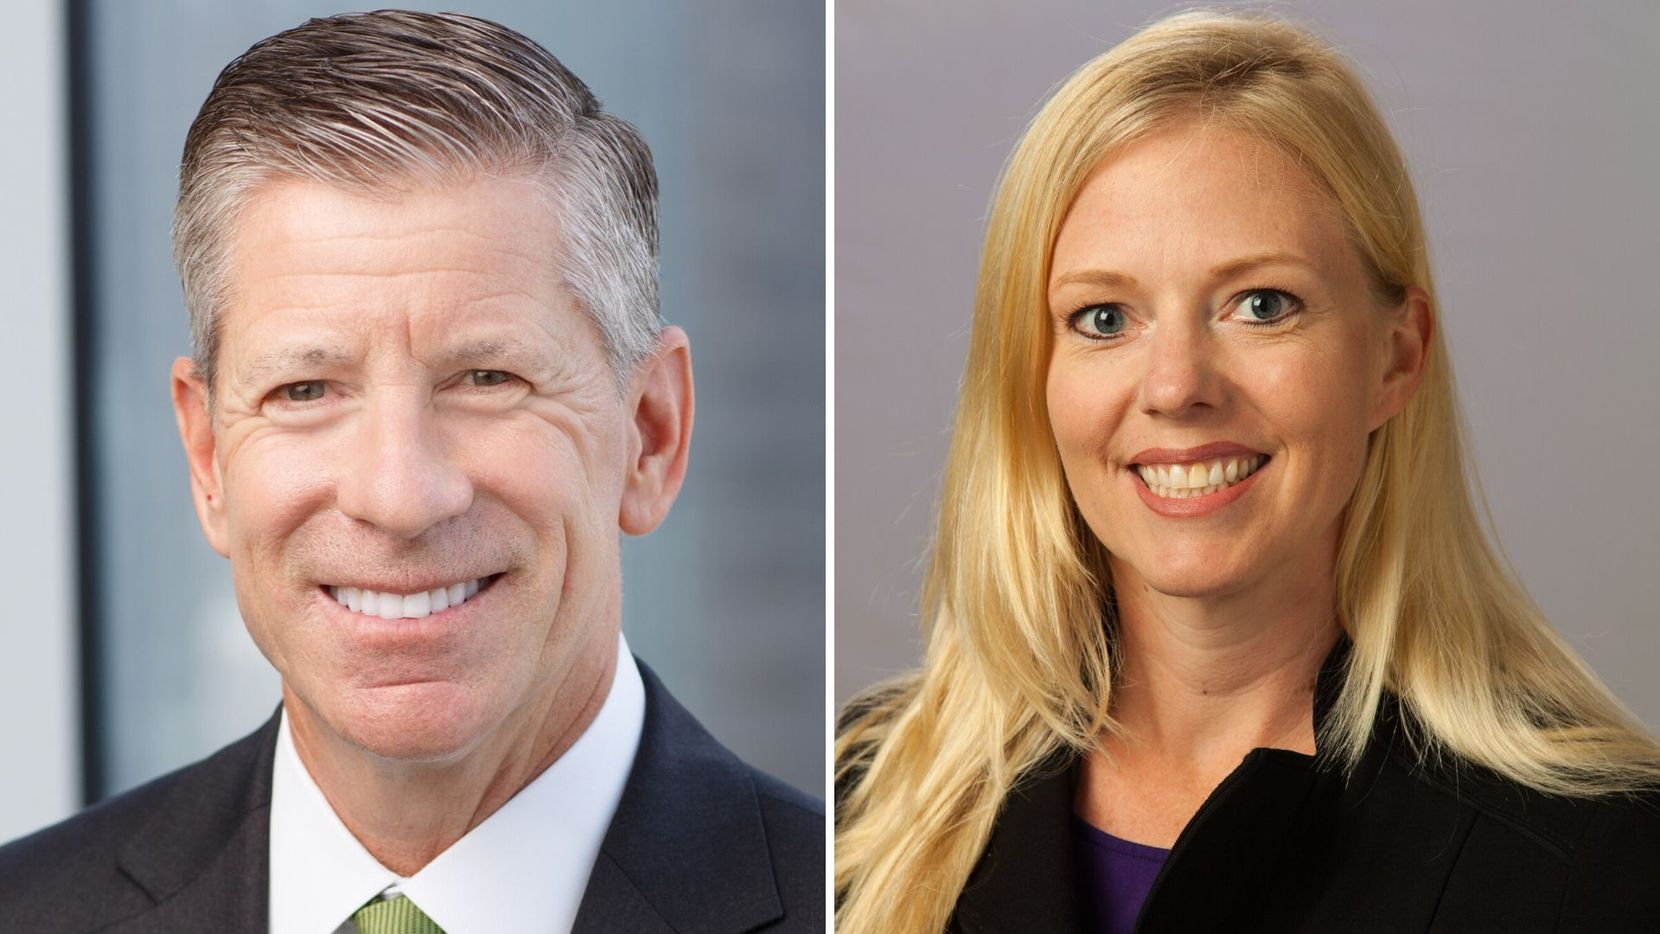 Outgoing managing partner Manny Fernandez (left) is retiring after a 36-year career. Kim Kesler (right) will take over as the KPMG Dallas practice's first female managing partner in history.